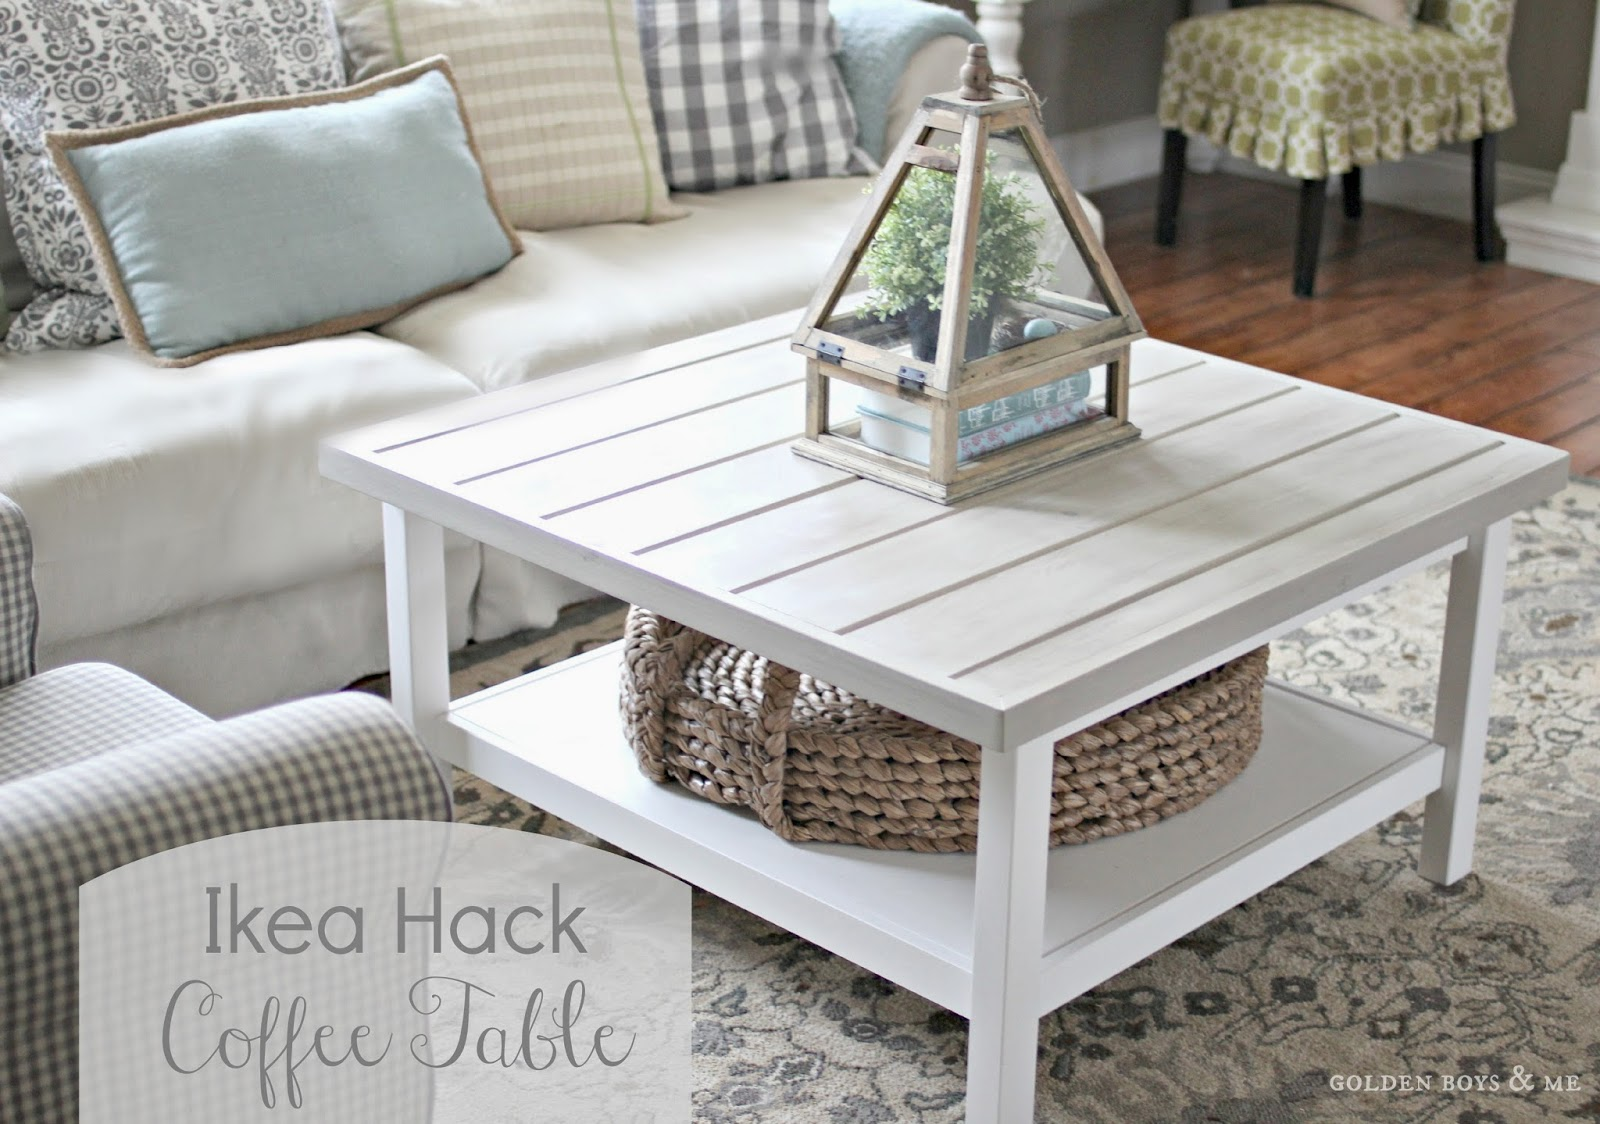 ikea living room tables blue and yellow images golden boys me coffee table hack hemnes with planked top www goldenboysandme com